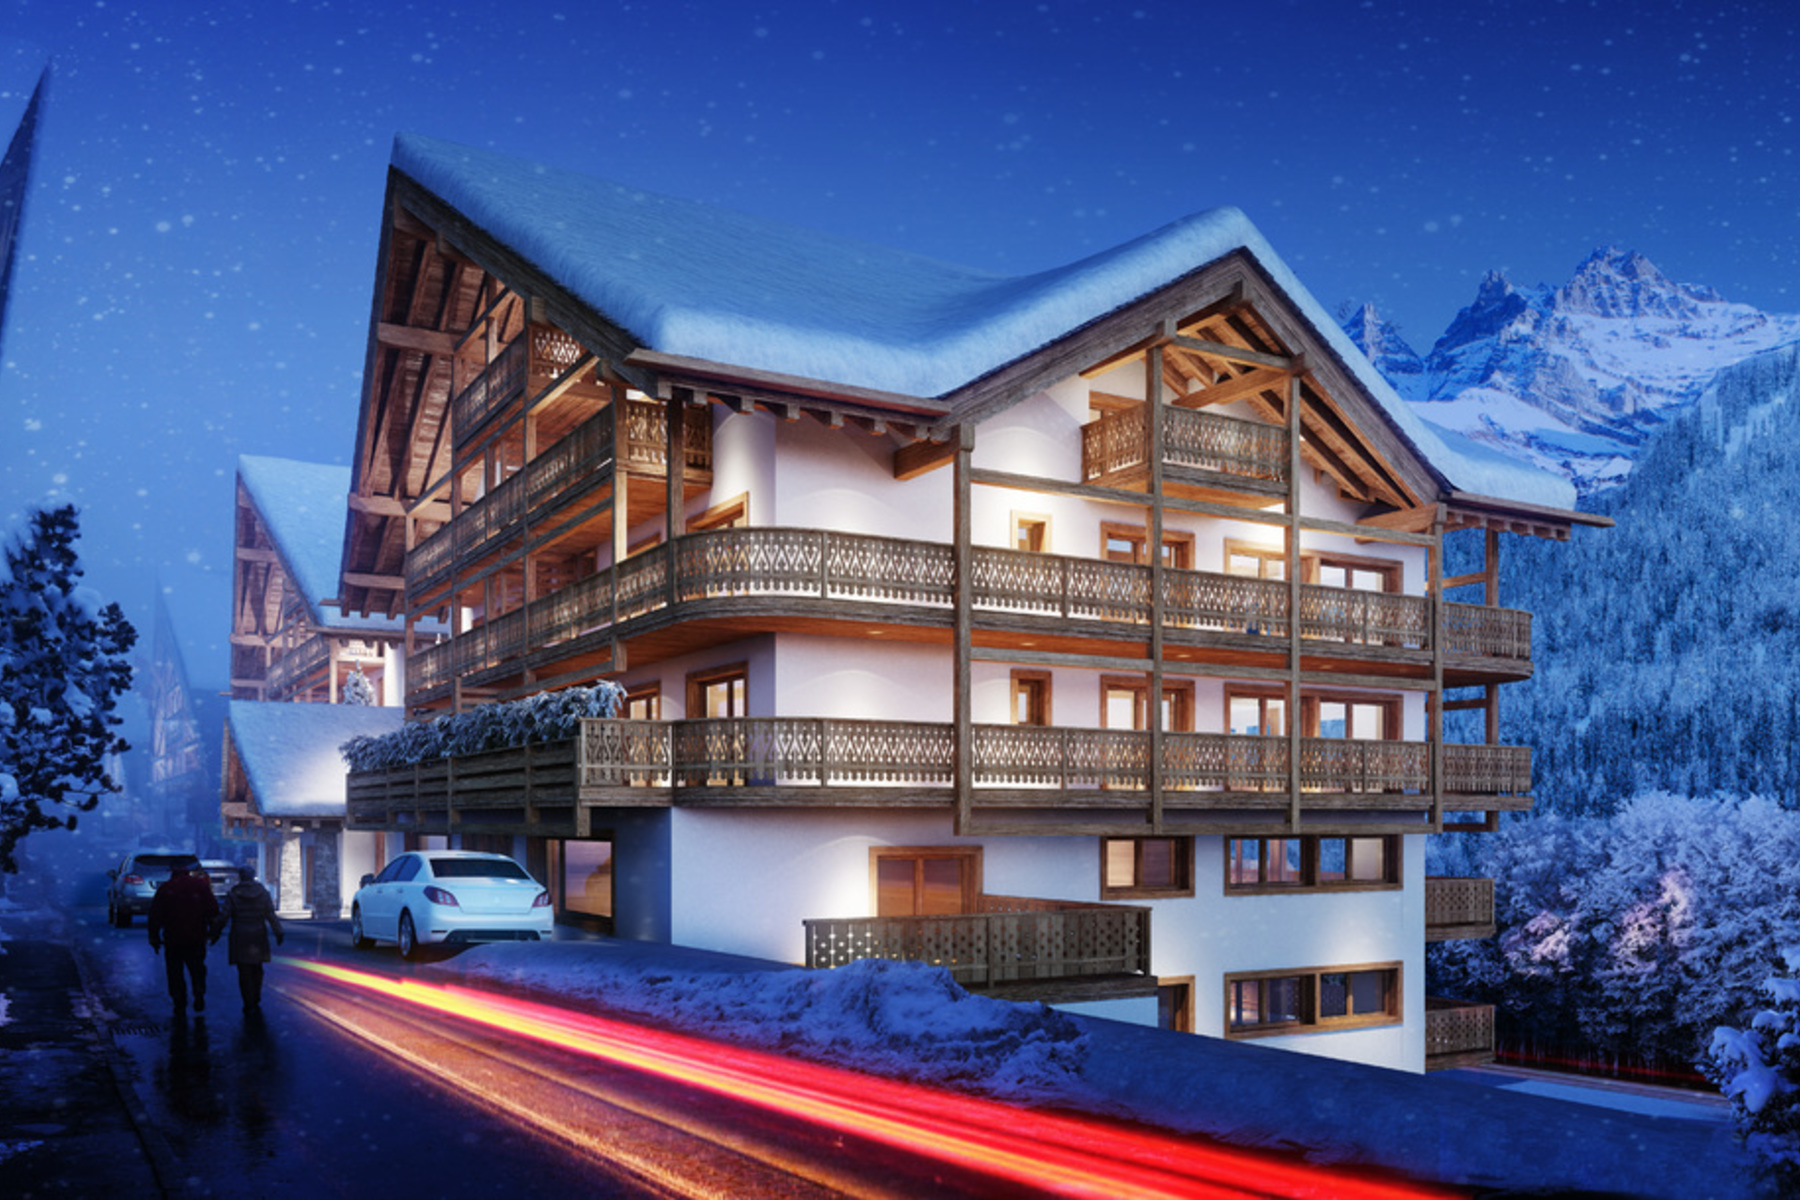 複式單位 為 出售 在 Résidence Le Montagnier - New-build apartment with amazing views Champéry Champery, 瓦萊州, 1874 瑞士